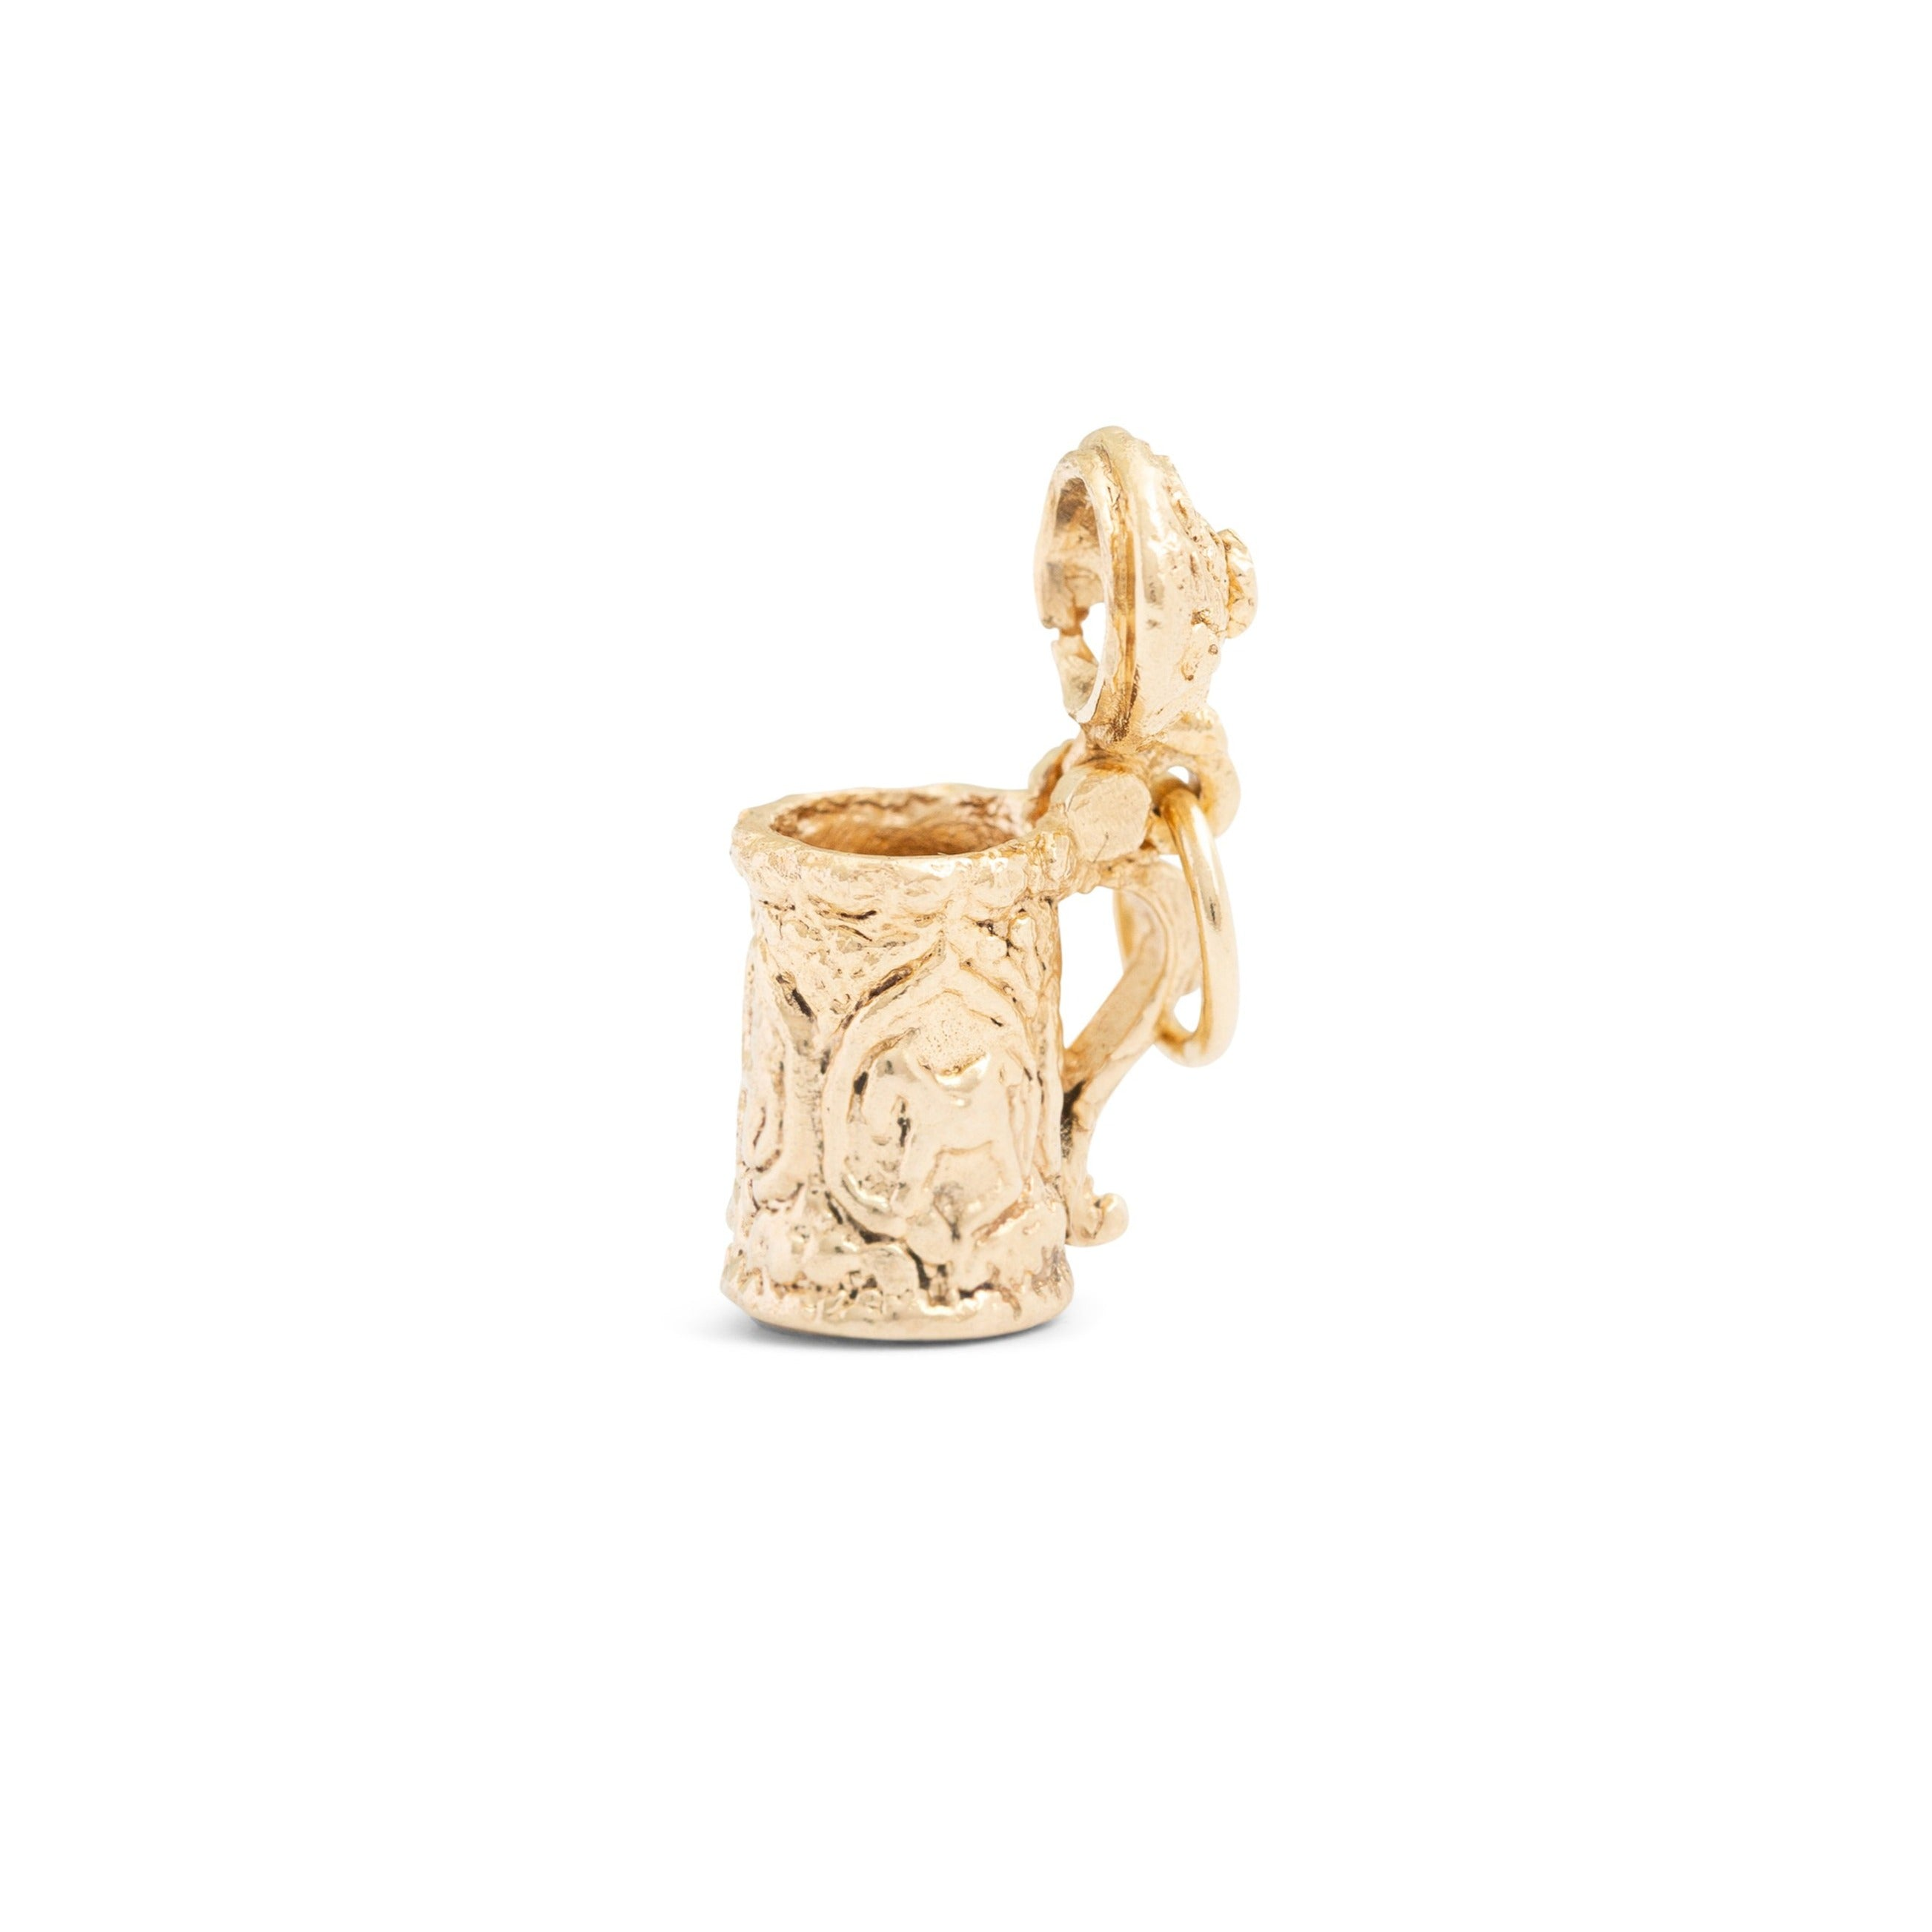 Movable Beer Stein 14k Gold Charm